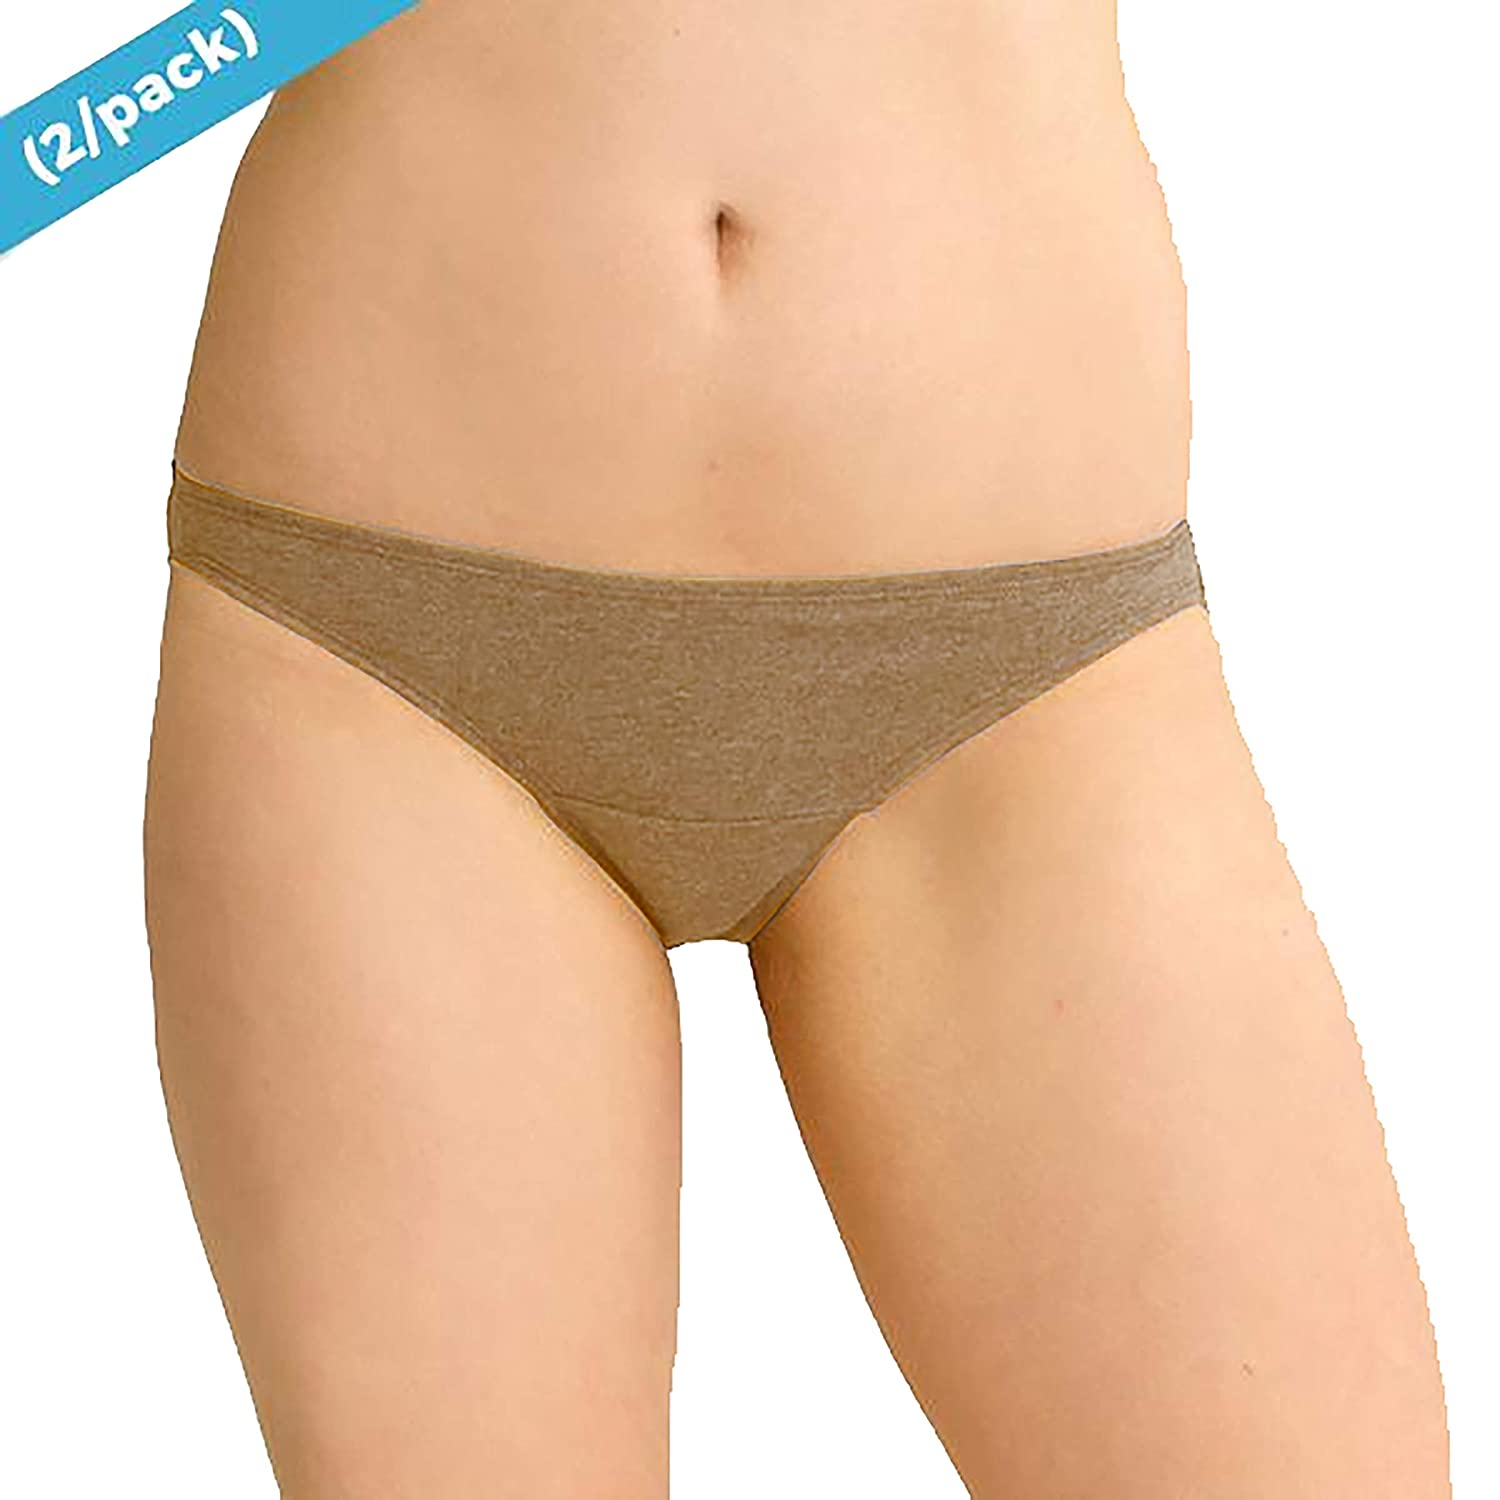 Cottonique Organic Cotton Bikini Brief Panty - 2 Pack (W22206)